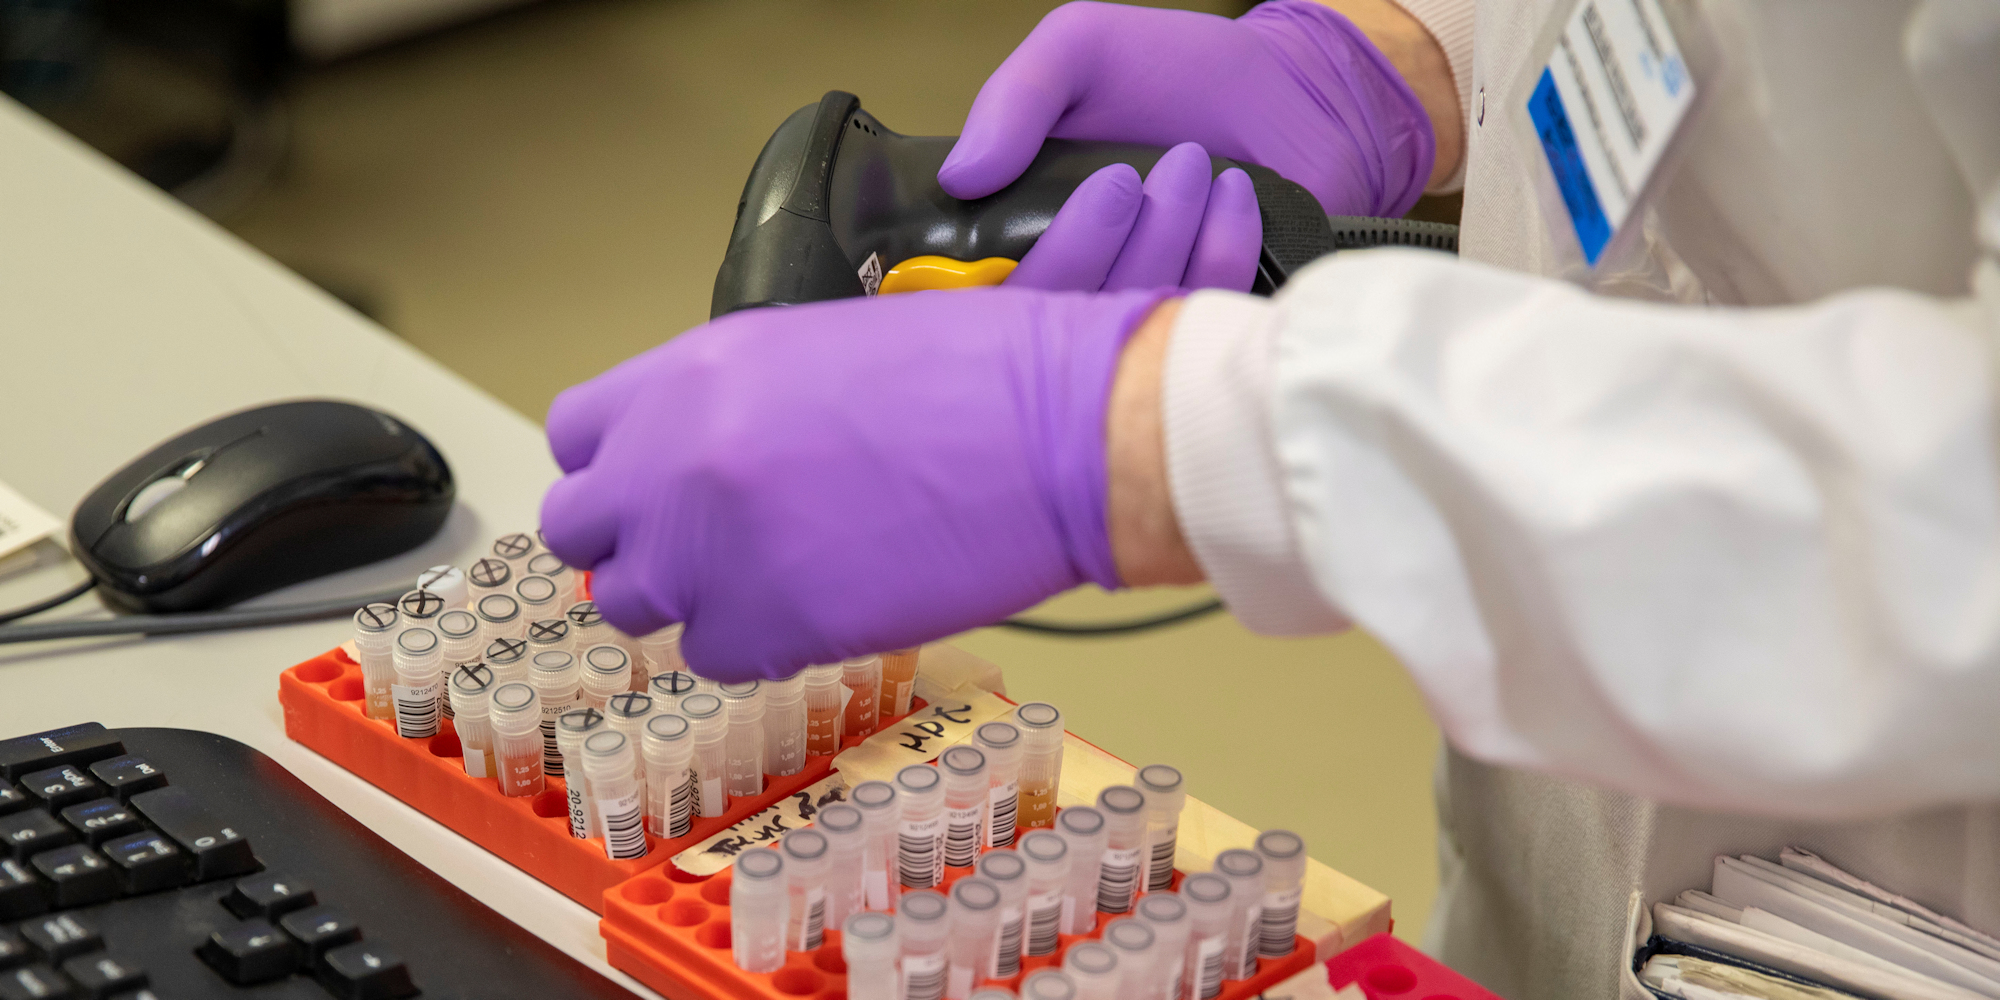 With Labs Overwhelmed, Testing Can Only Show A Fraction Of BC's True COVID-19 Cases